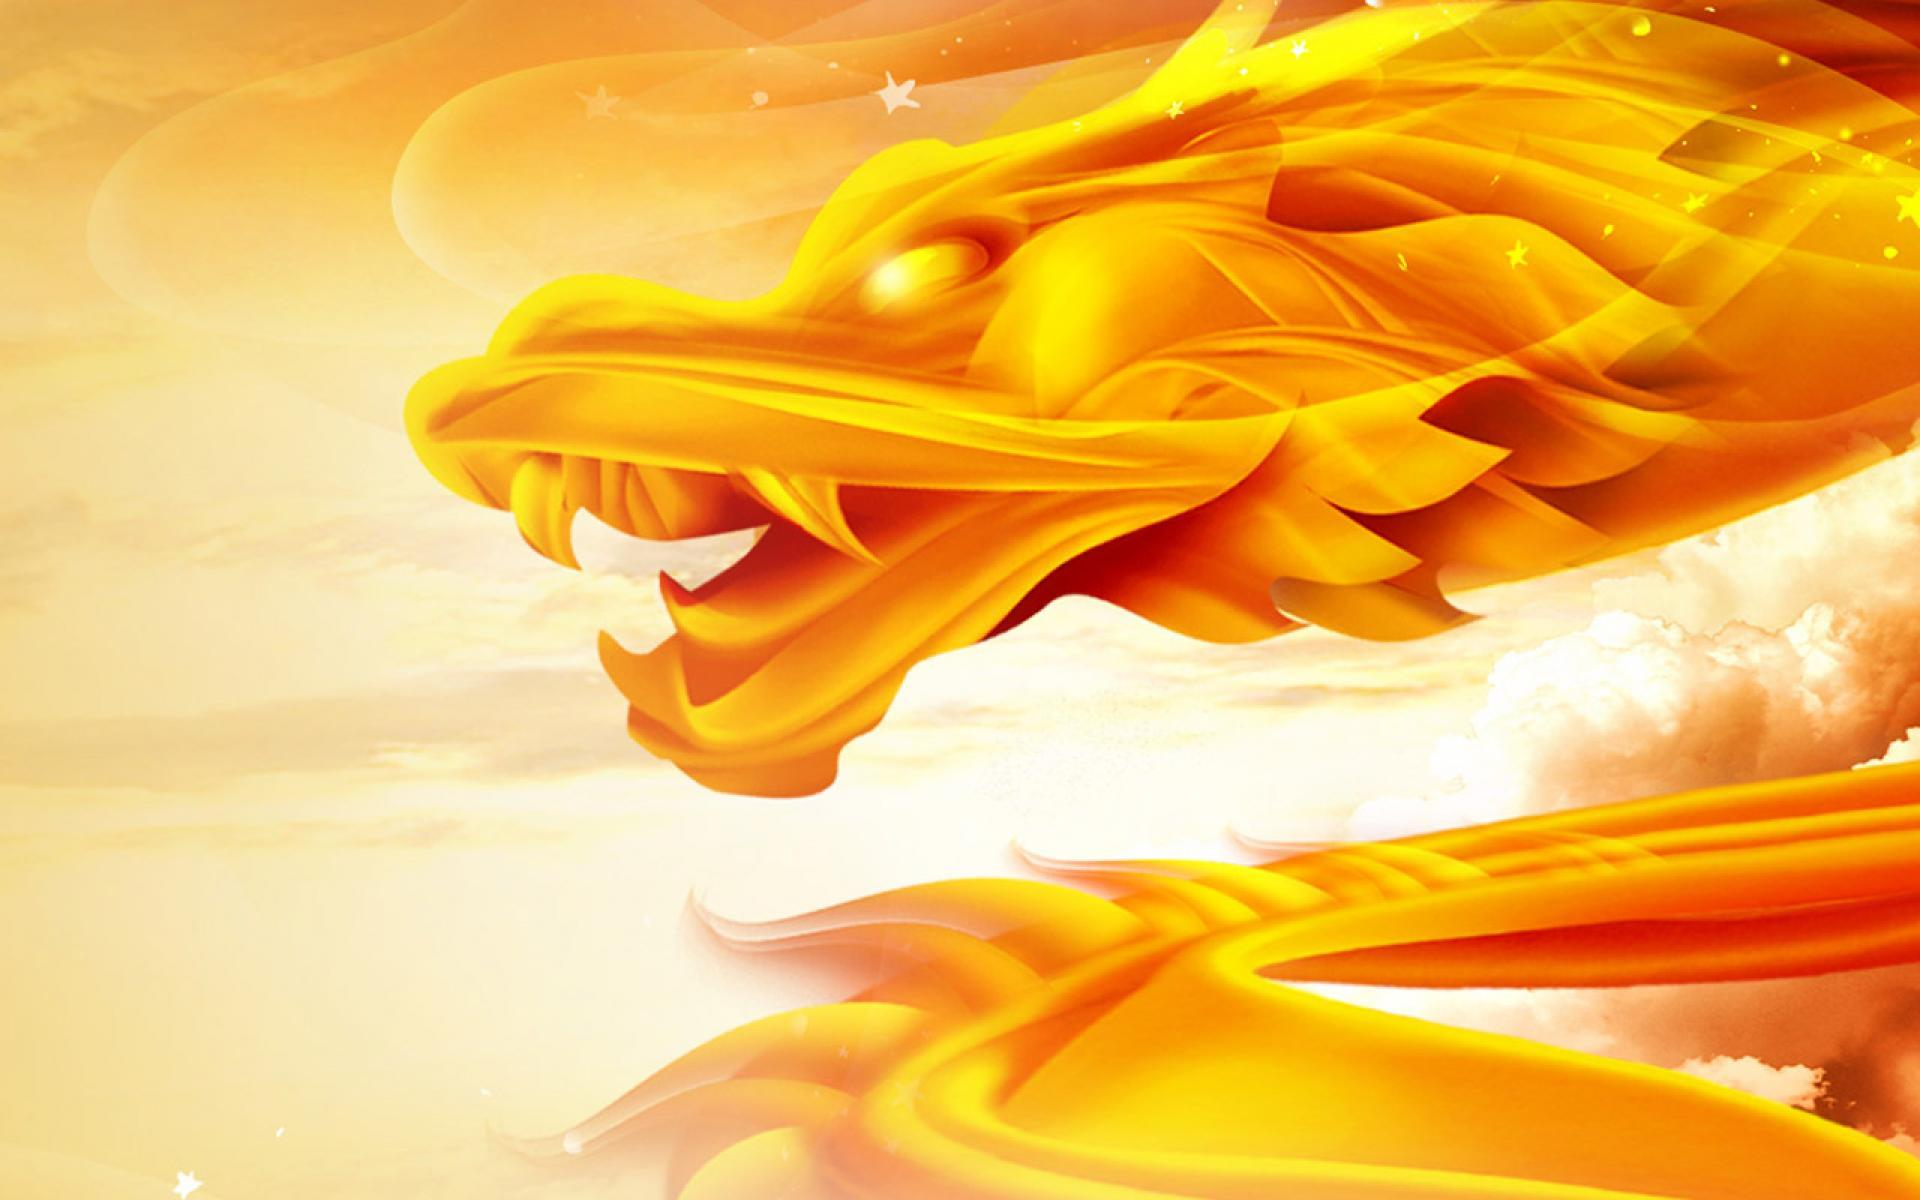 red chinese dragon wallpaper - photo #17